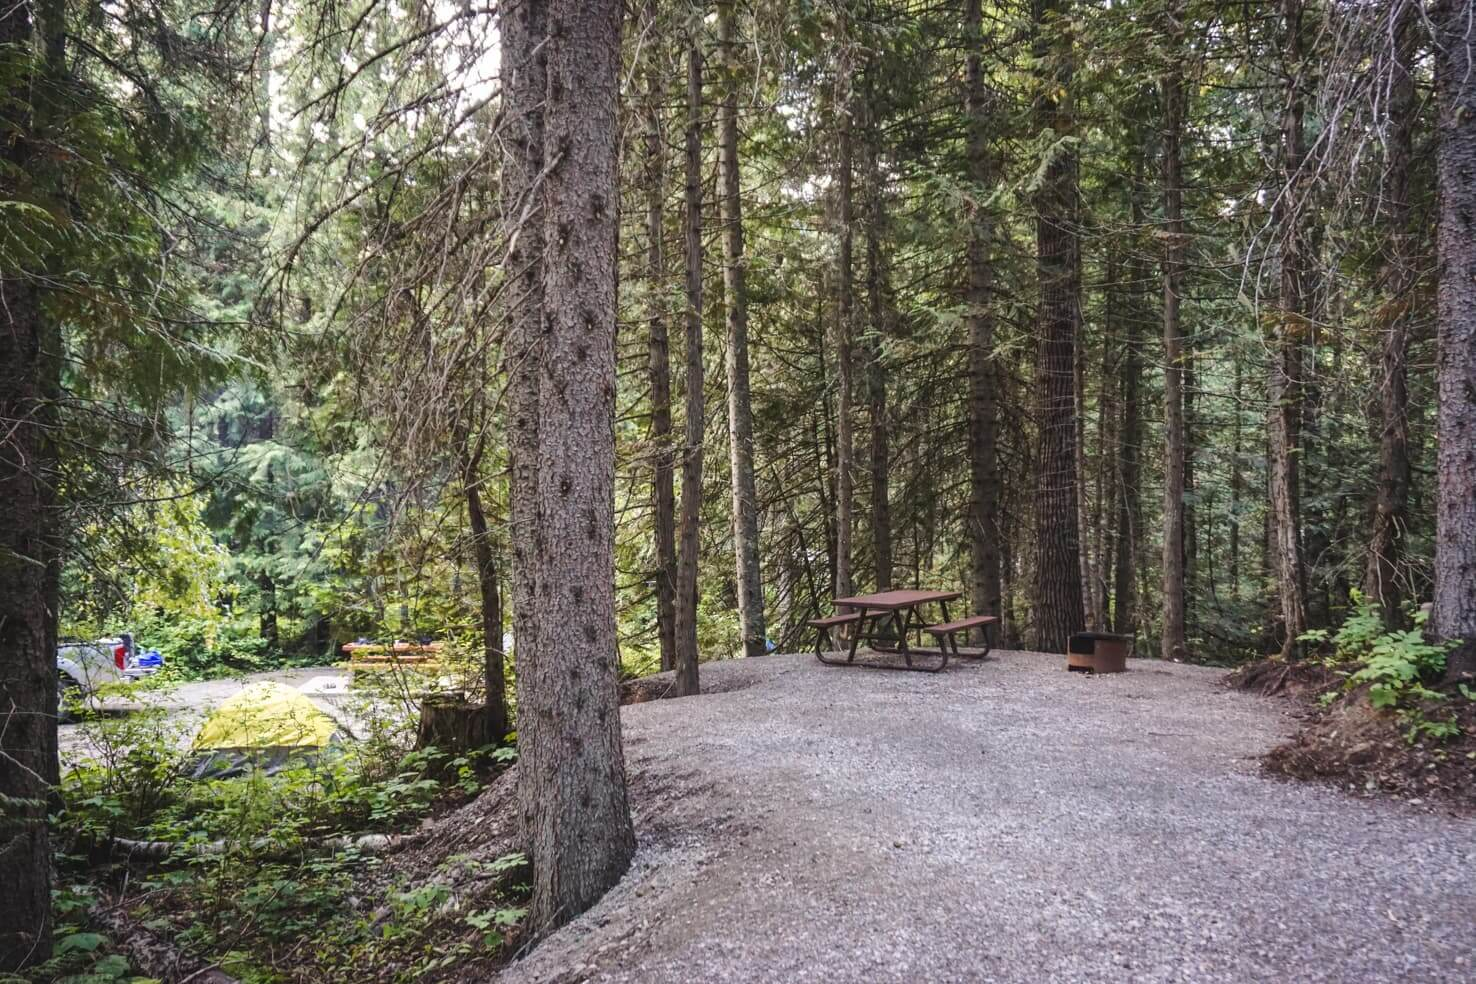 Things to do in Fernie, BC - 8 Stay overnight at Mount Fernie Provincial Campground